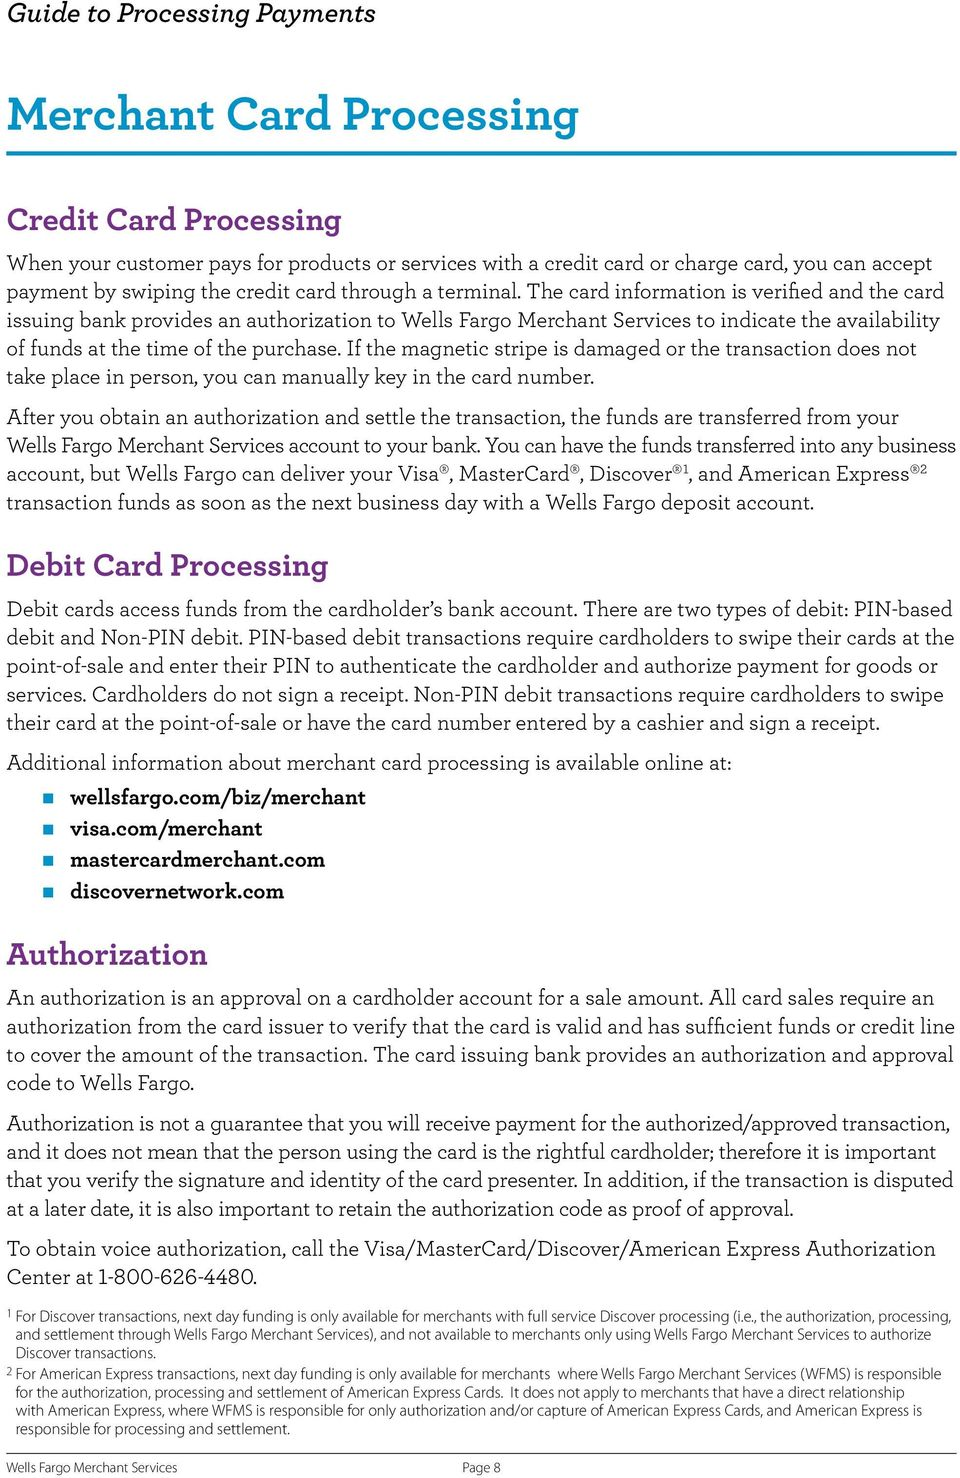 Guide to Processing Card Payments - PDF